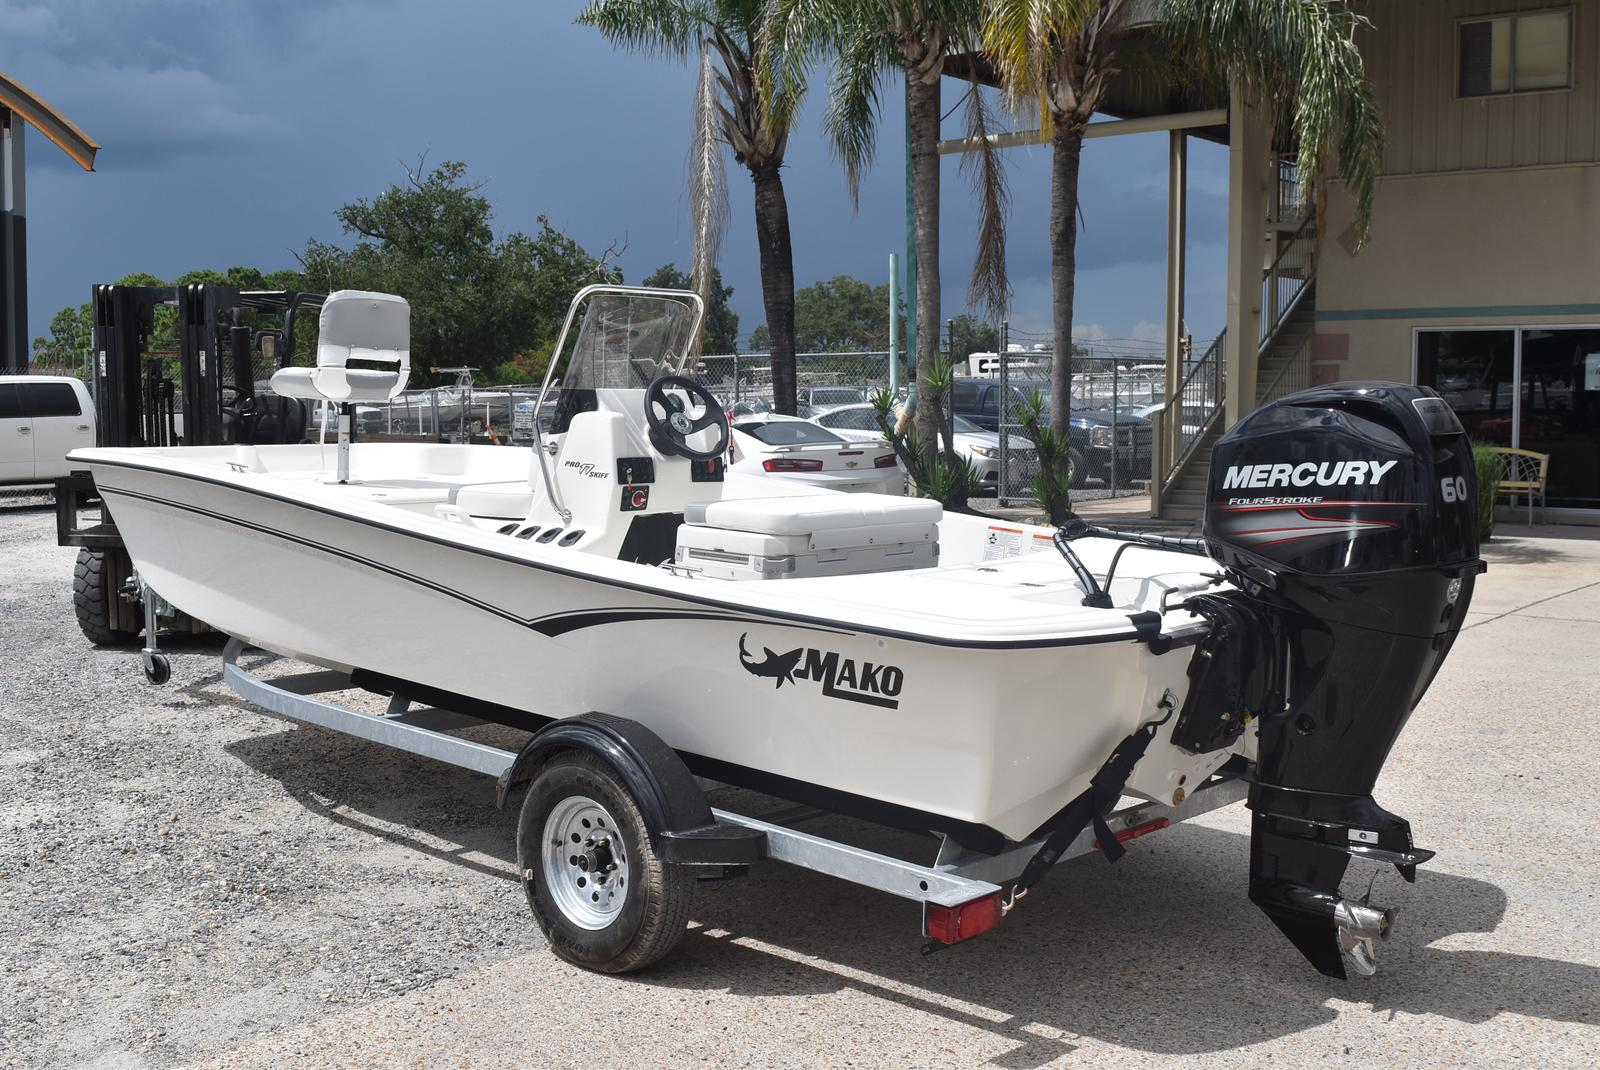 2020 Mako boat for sale, model of the boat is Pro Skiff 17, 75 ELPT & Image # 173 of 702